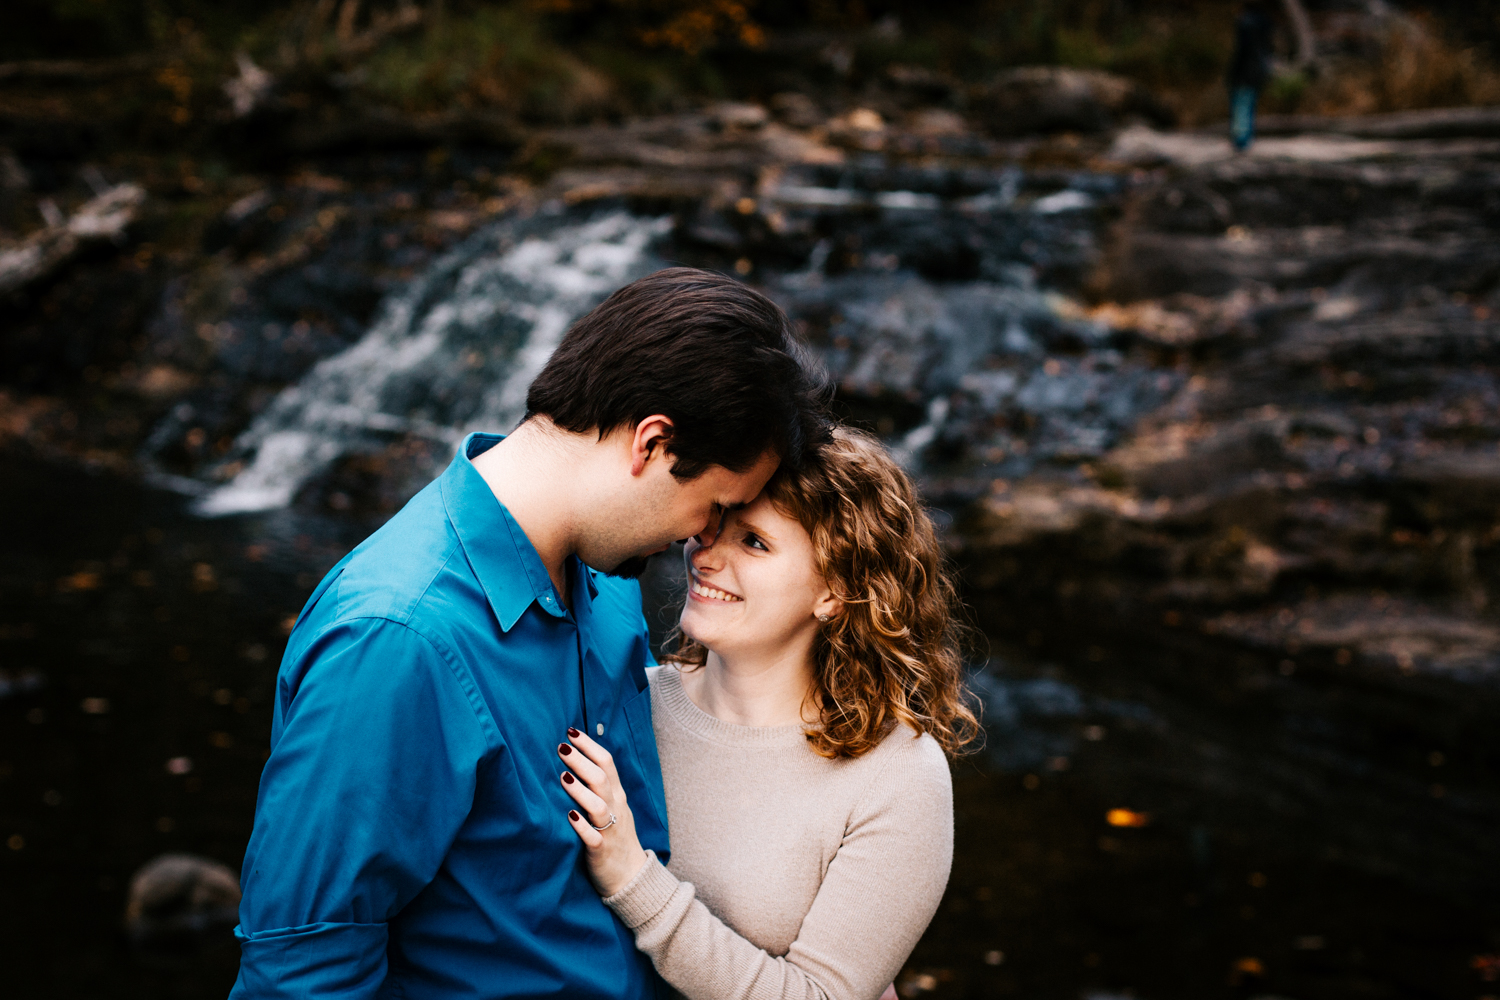 kent-falls-waterfall-engagement-session-october-new-england-fall-boston-destination-wedding-photographer.jpg